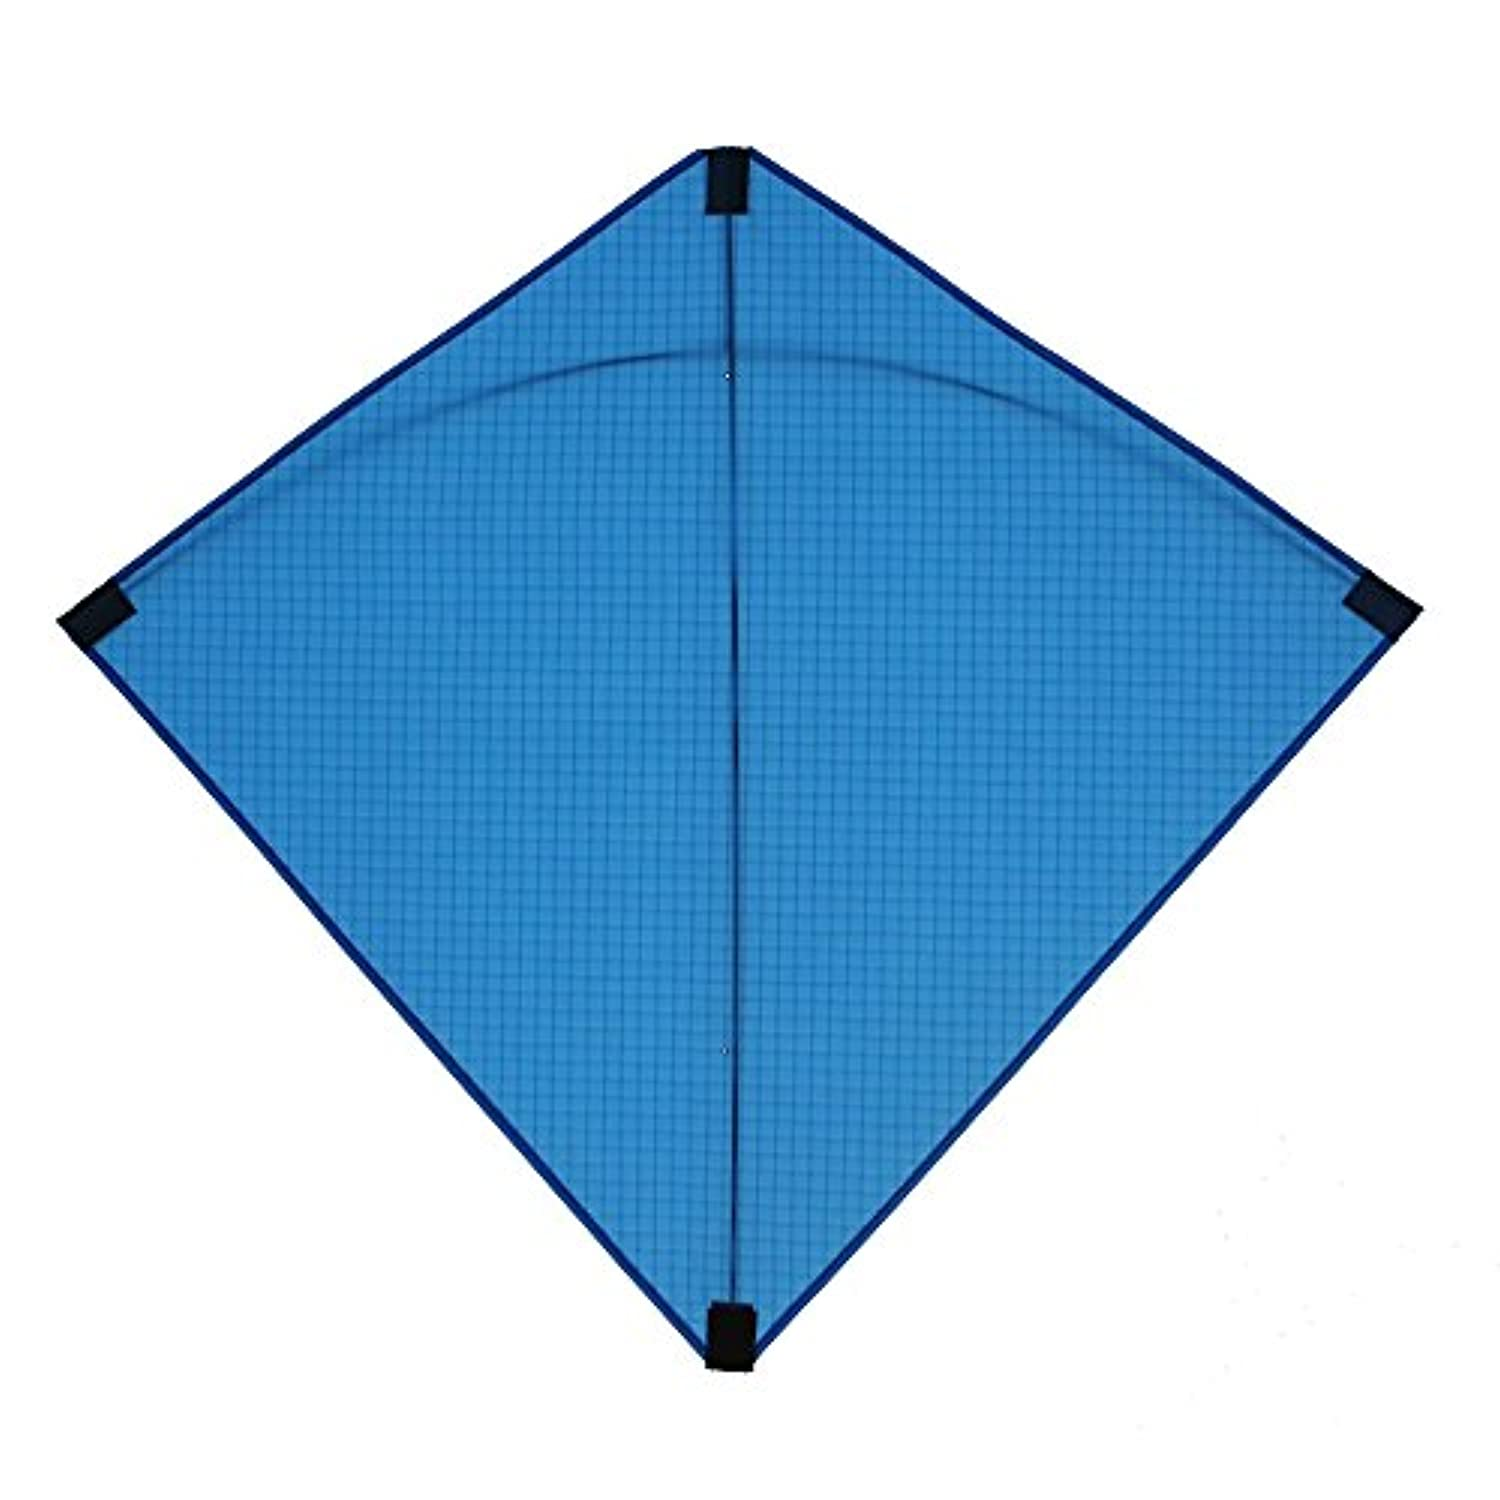 Into the Wind AquaクラシックHata Diamond Kite Made in the USA